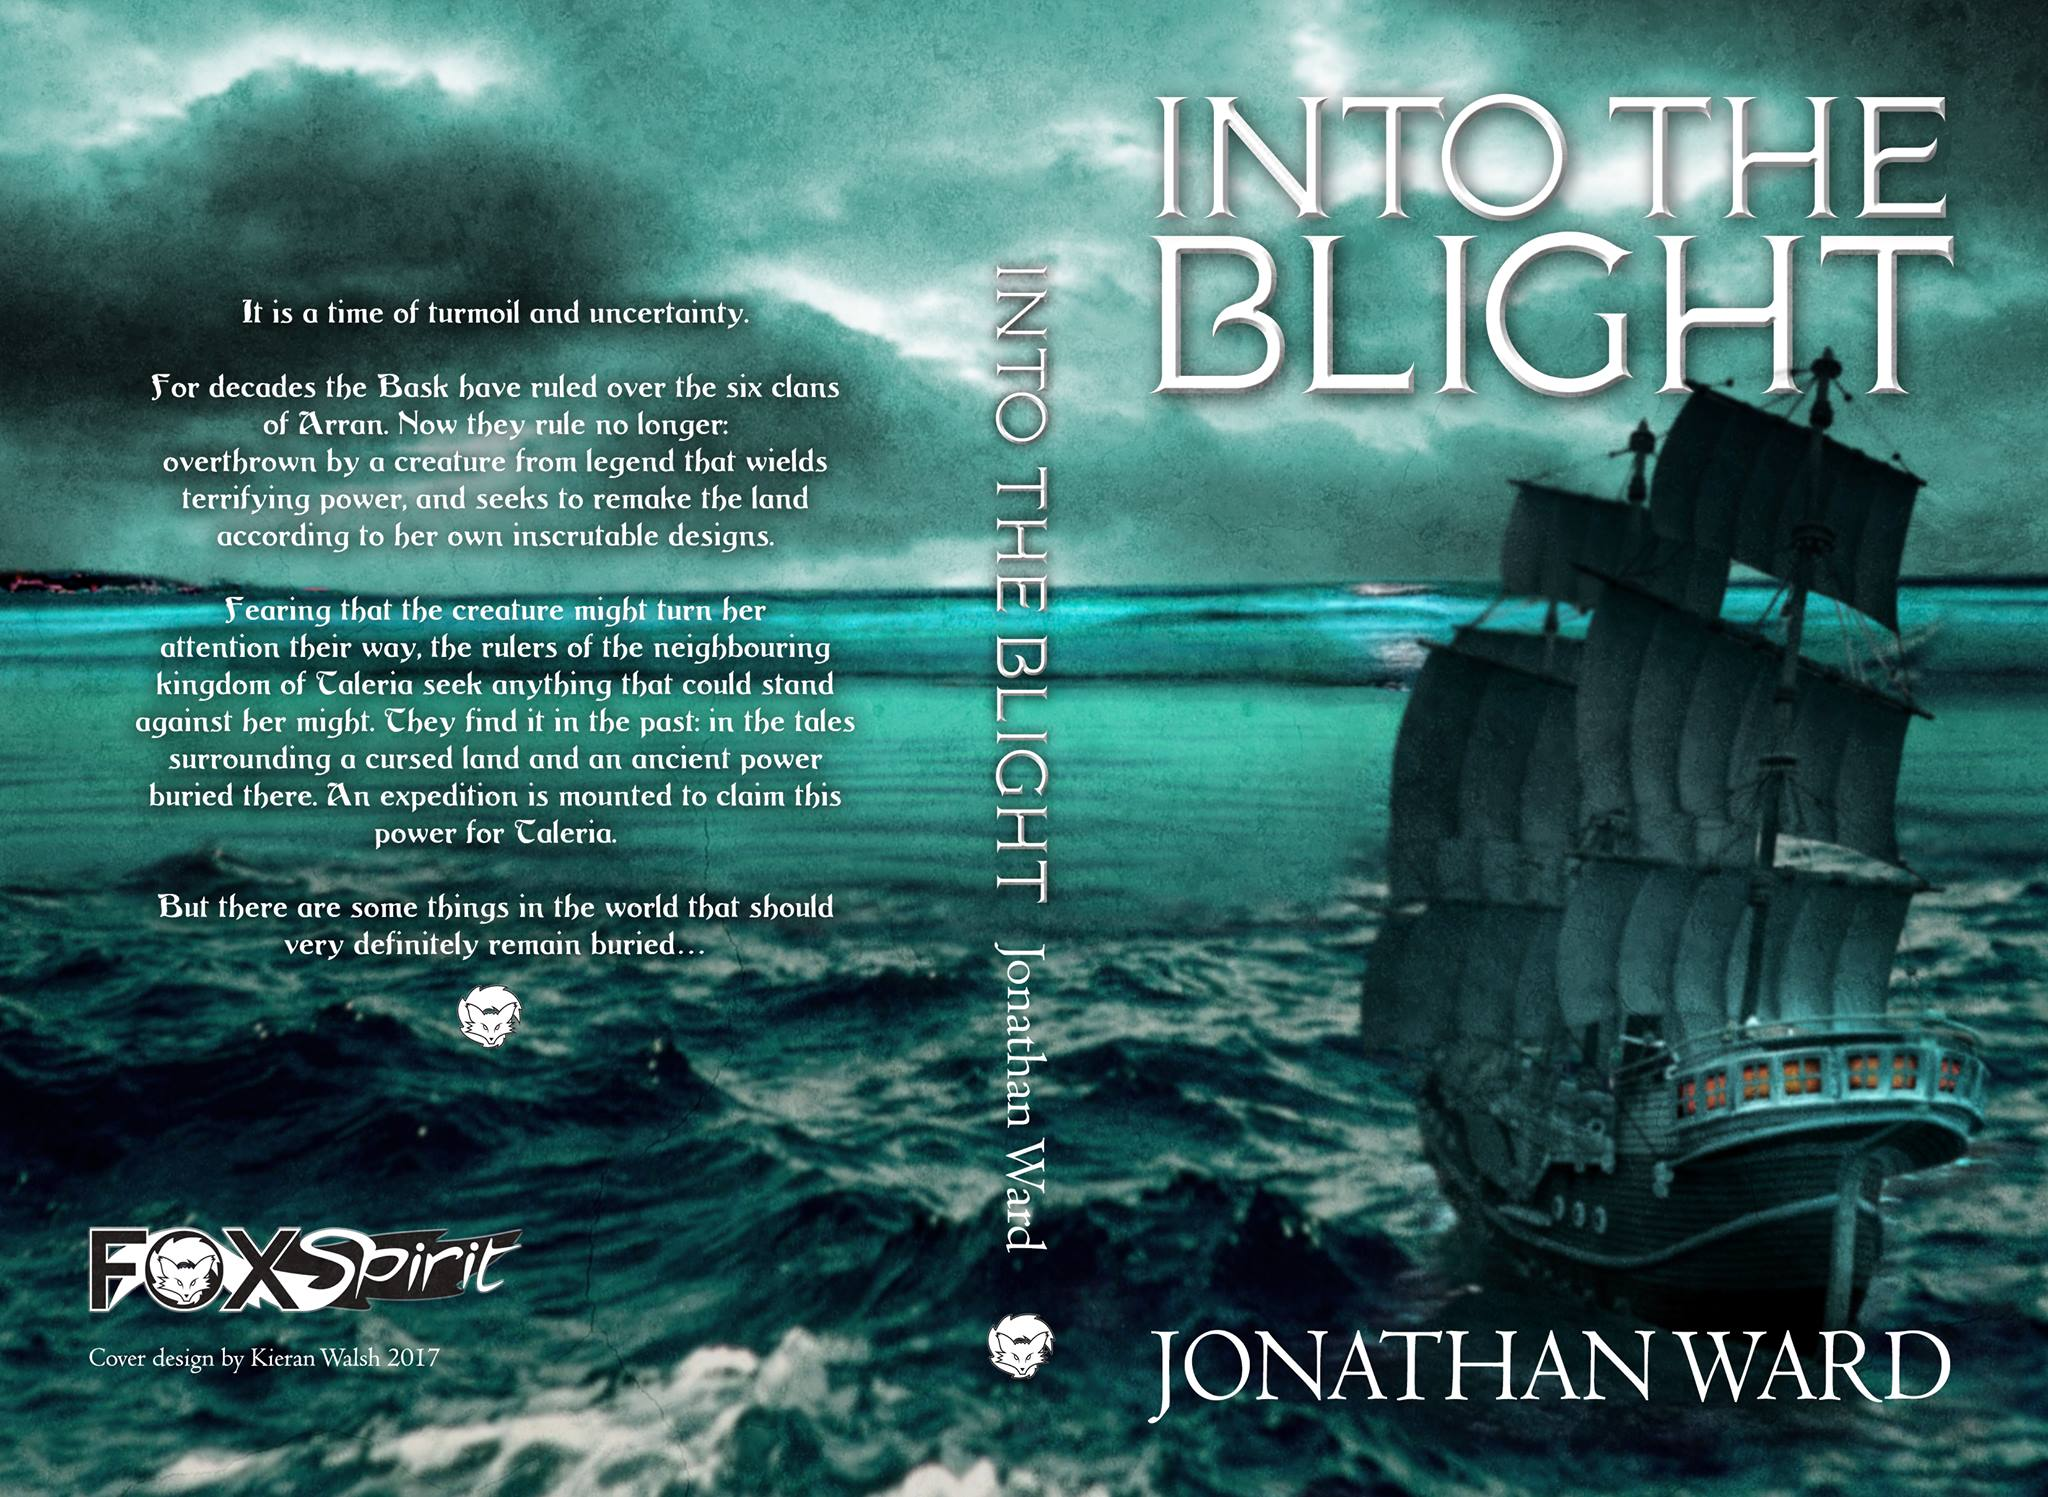 Into the Blight by Jonathan Ward